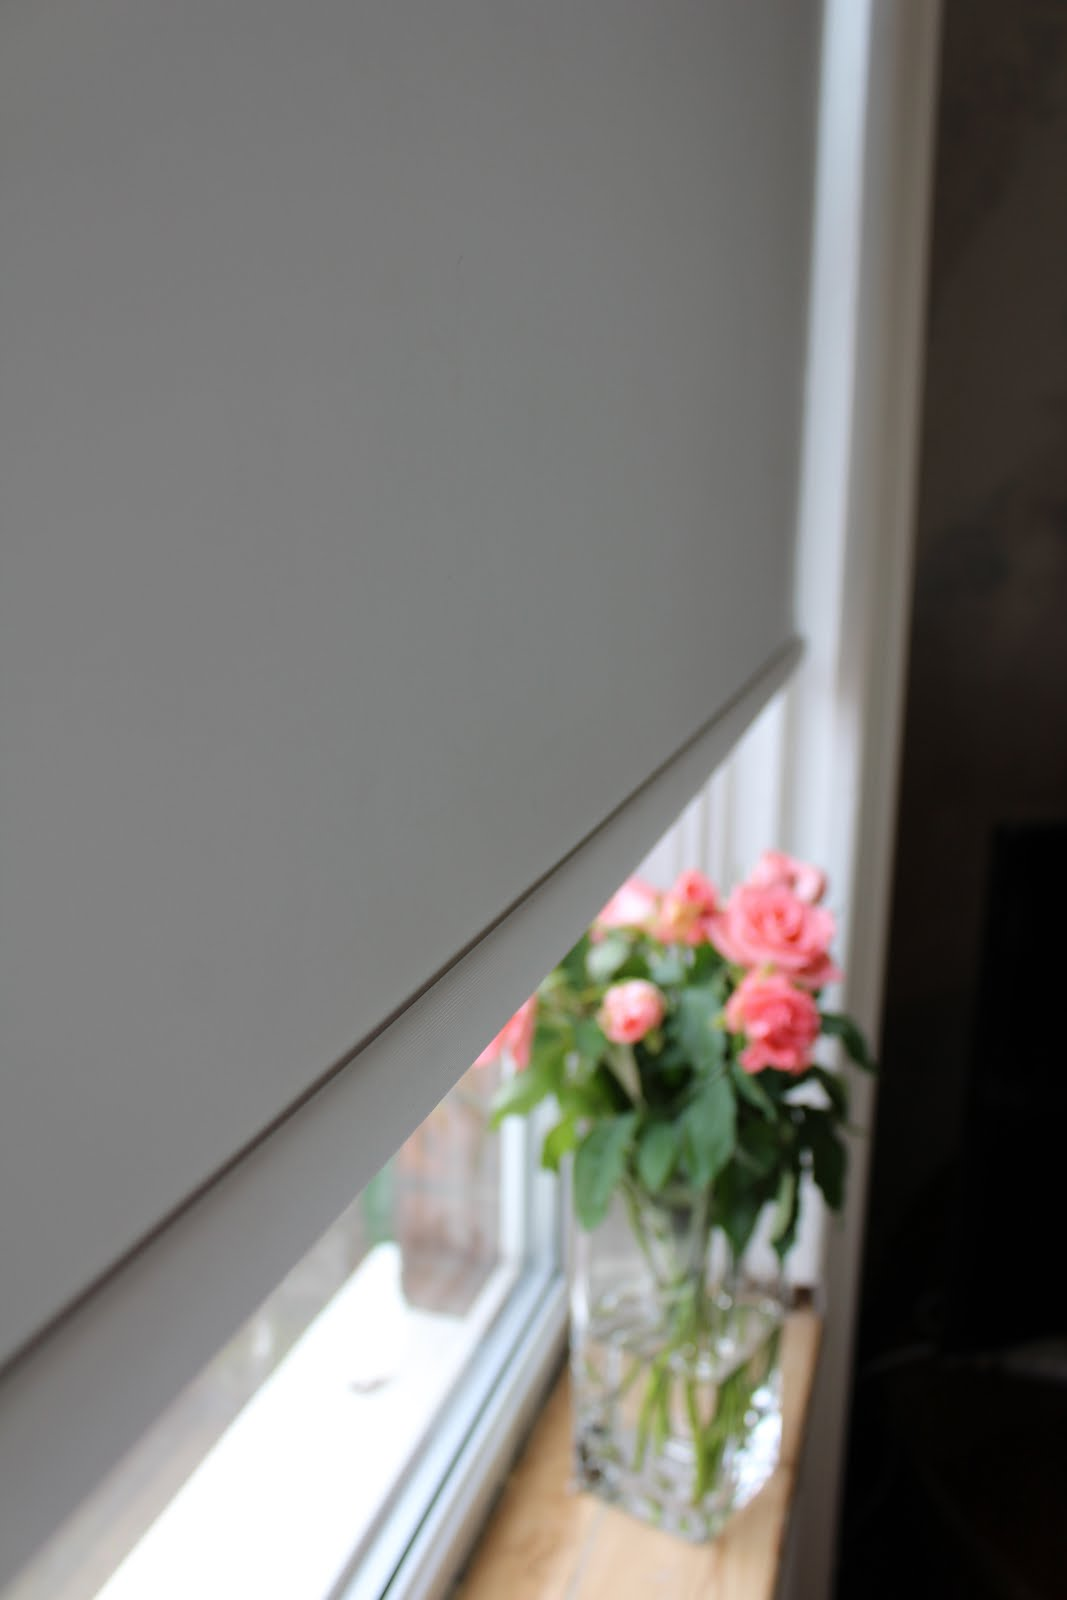 Order Electric Blinds Review